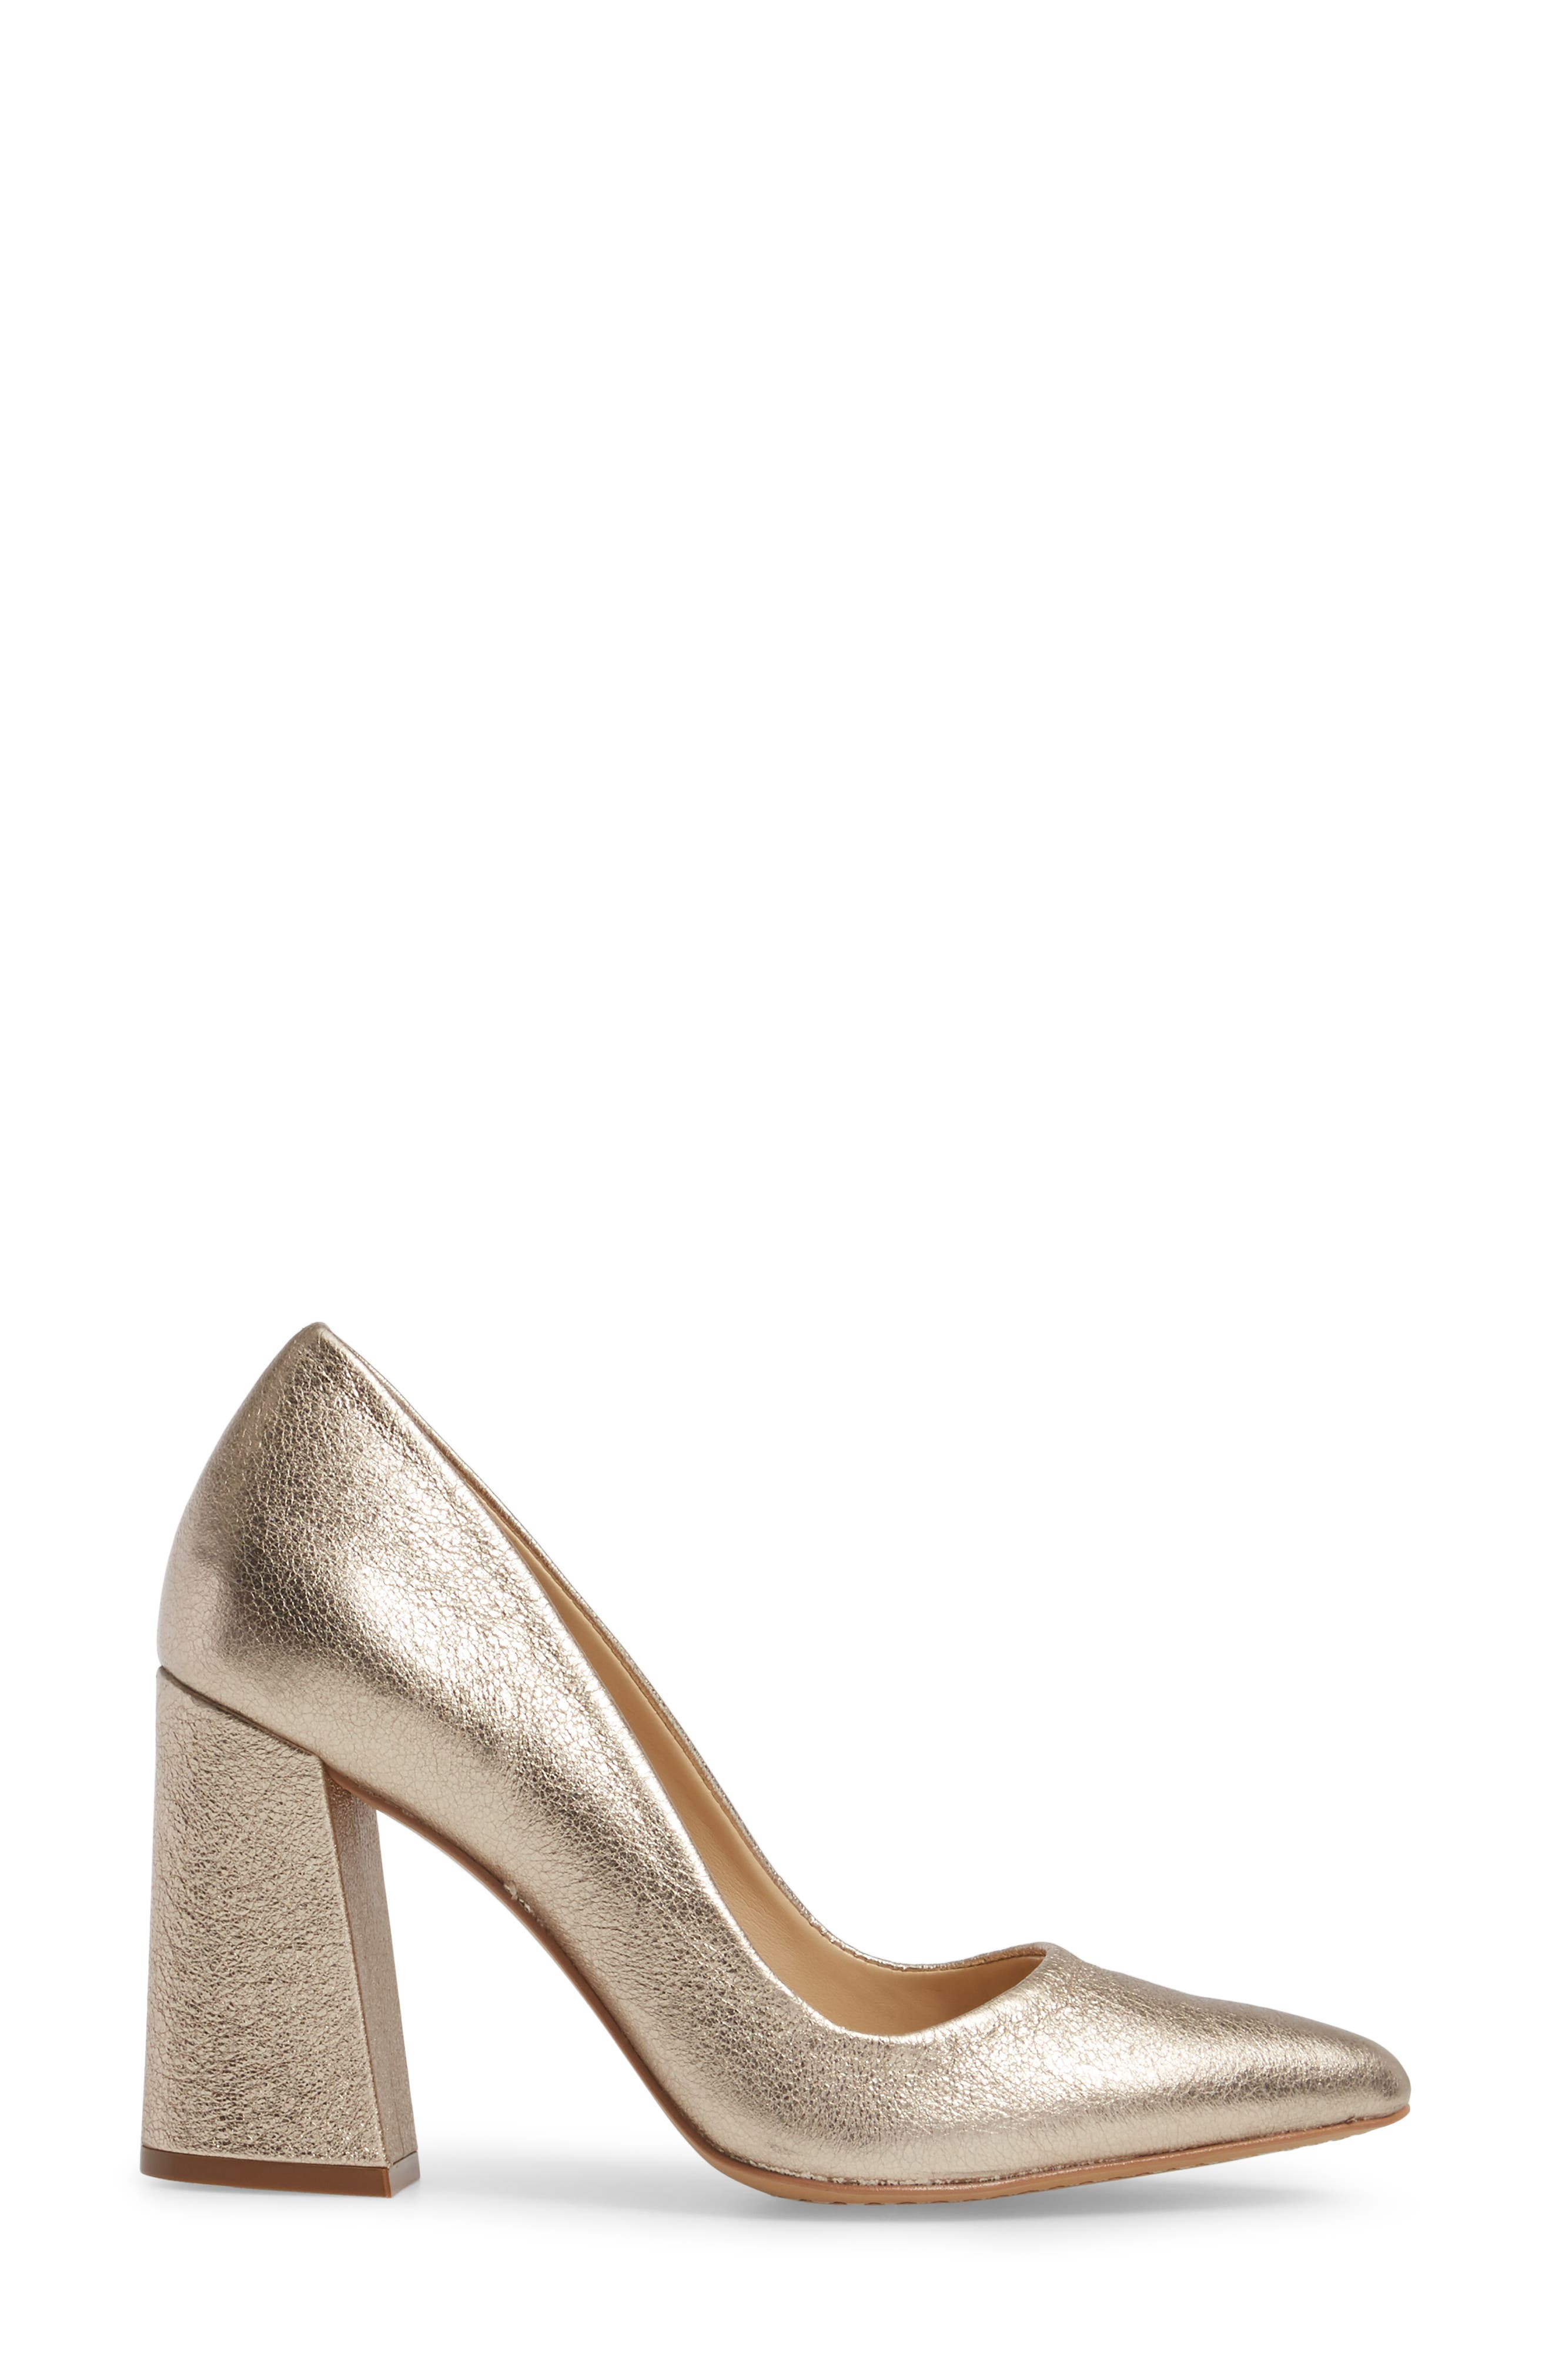 Alternate Image 3  - Vince Camuto Talise Pointy Toe Pump (Women)